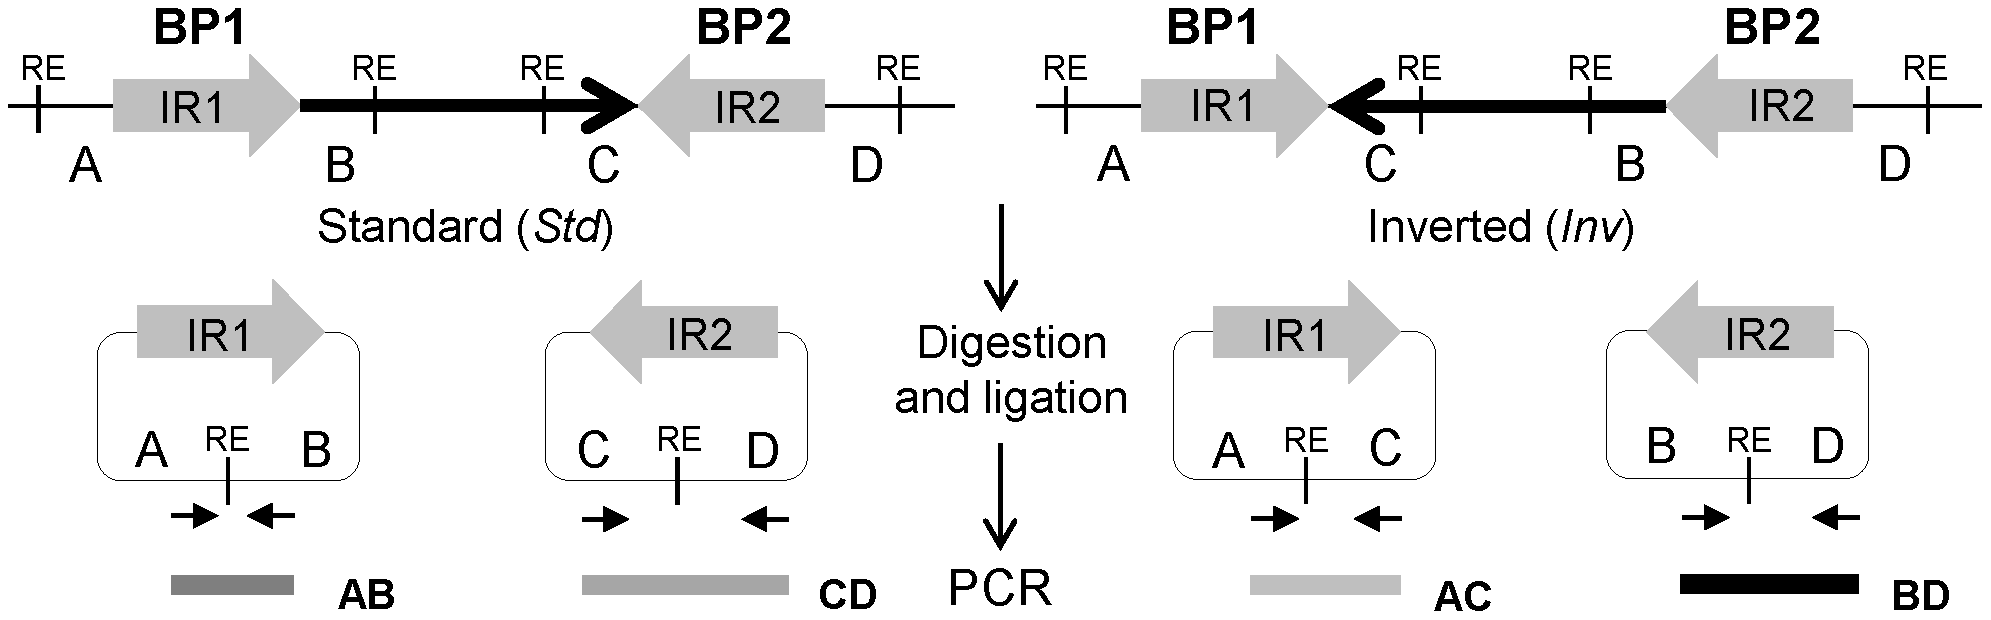 Diagram of iPCR validation of inversions mediated by inverted repeats (IRs).